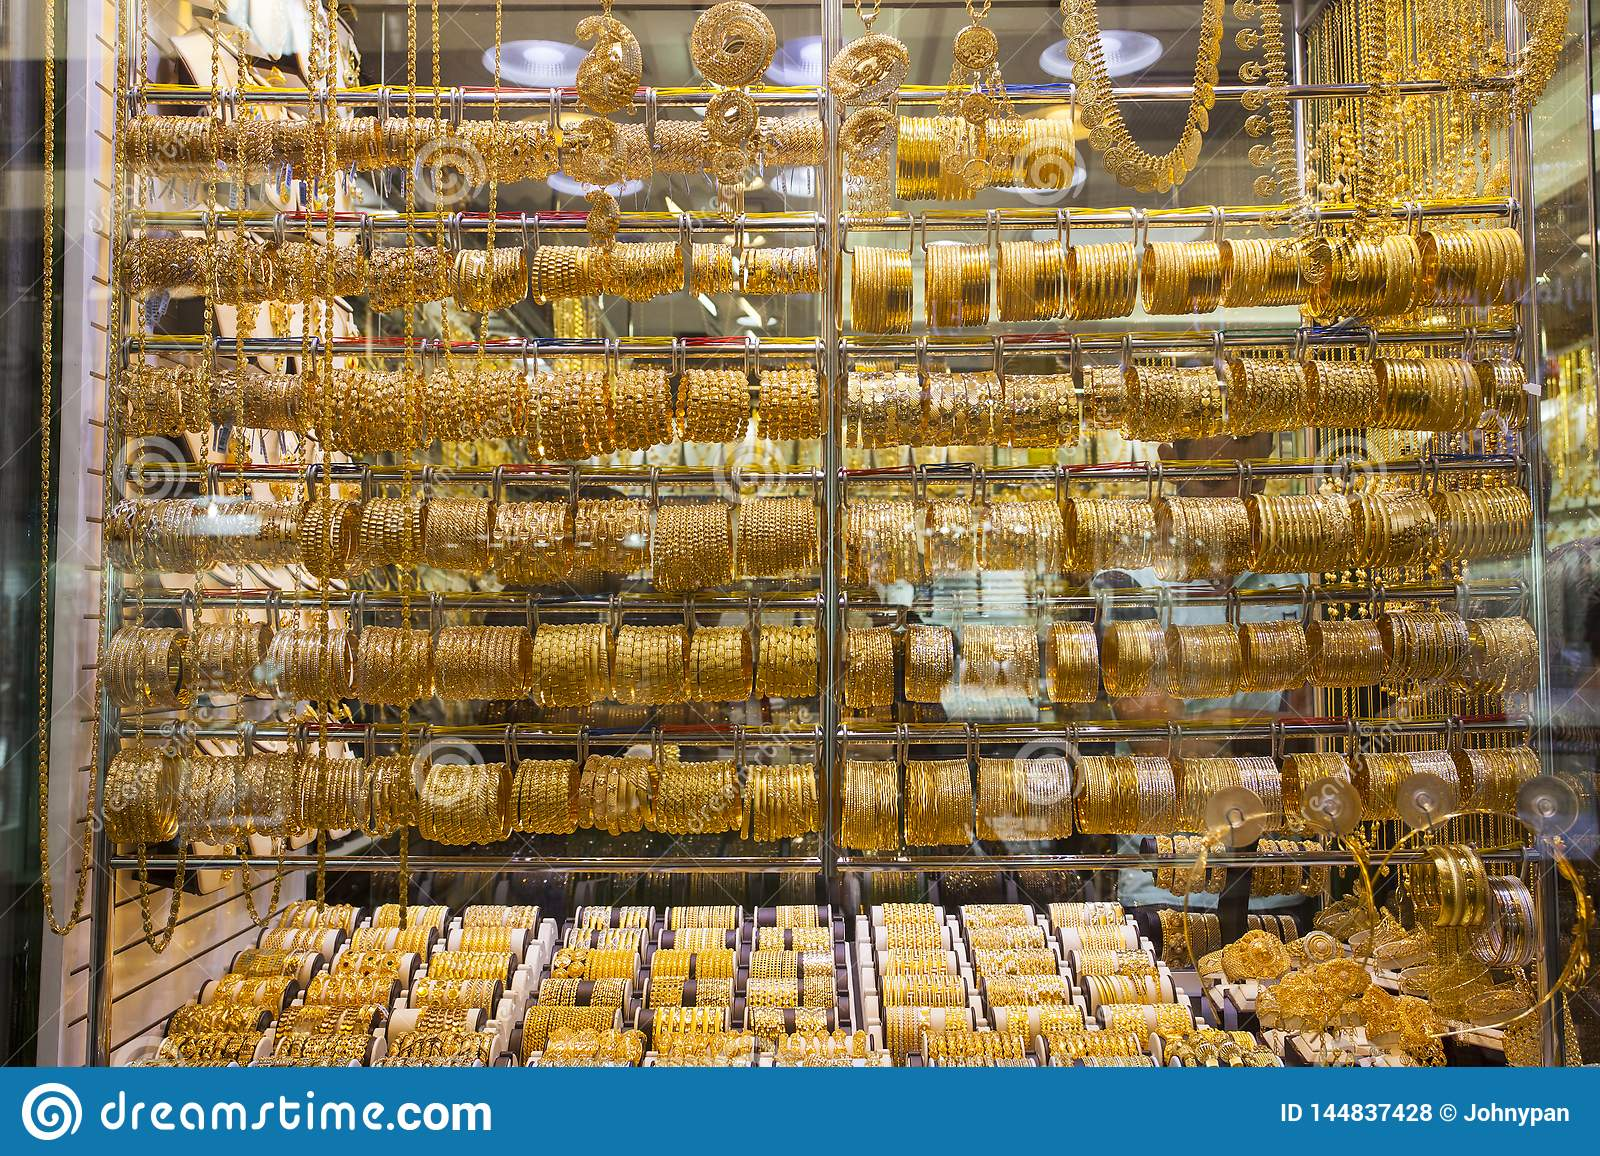 The Gold Souk Or Market In Dubai City Stock Photo - Image of